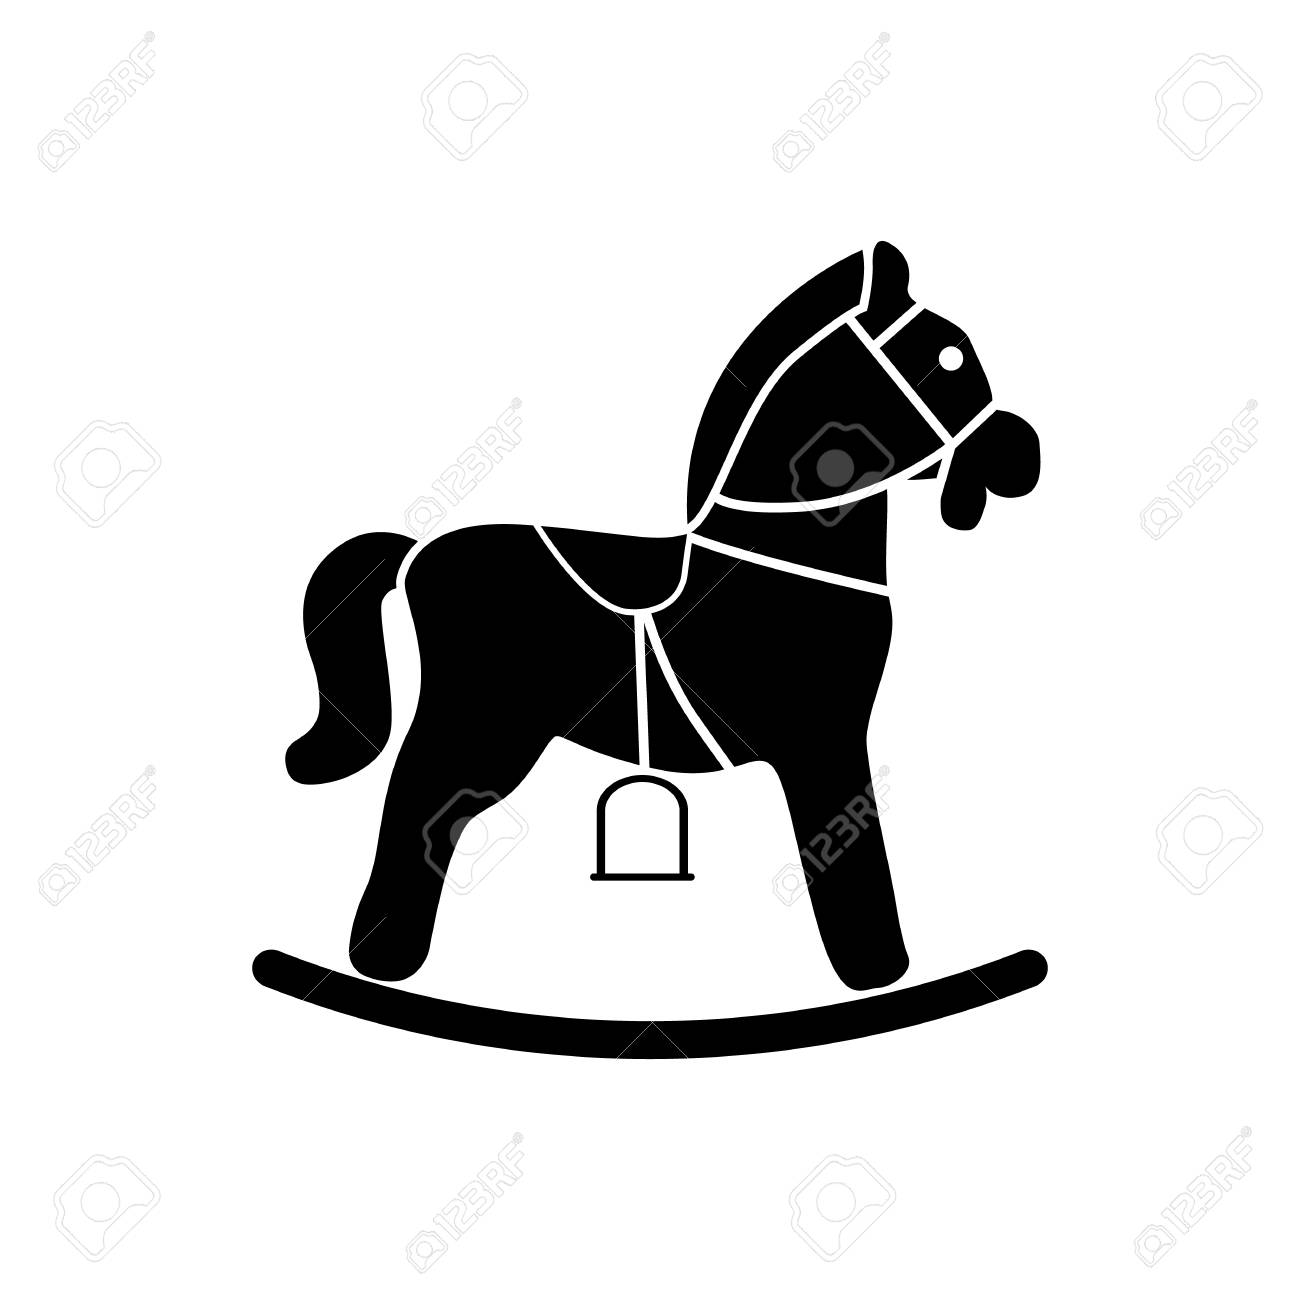 Rocking Horse Icon Black Silhouette Royalty Free Cliparts Vectors And Stock Illustration Image 79669114